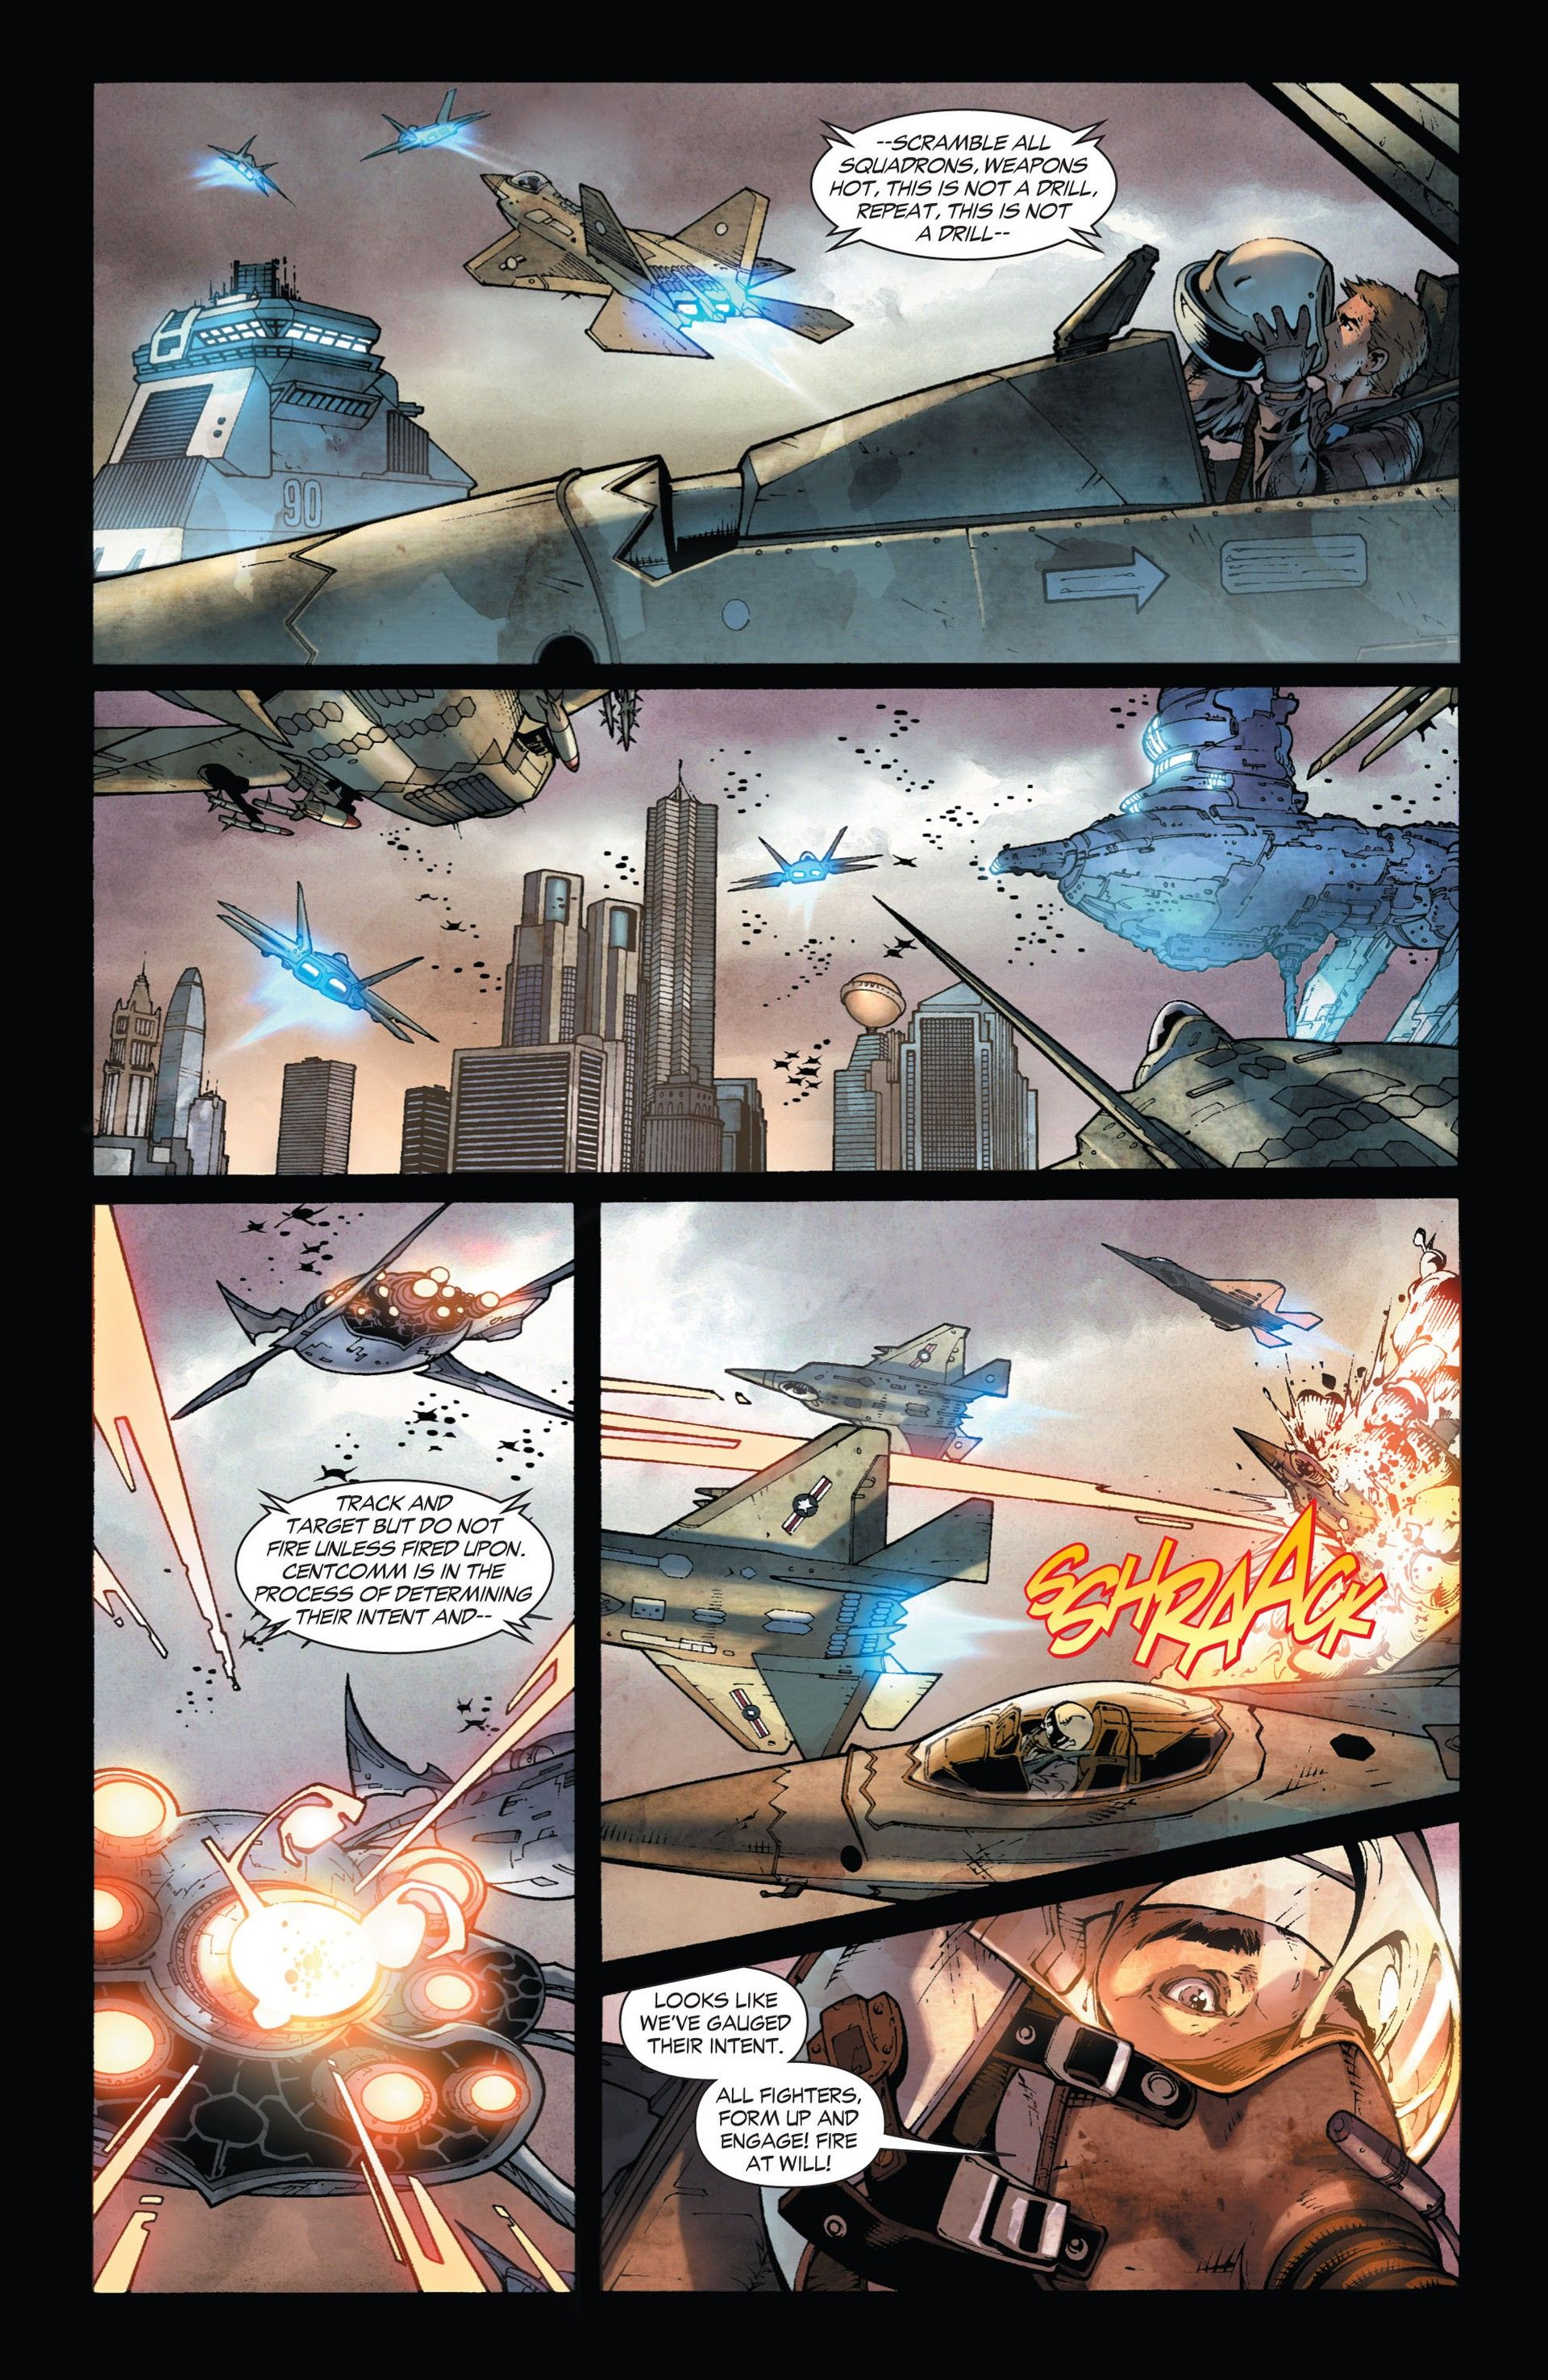 Follow comic_mad Click first image below to read comic